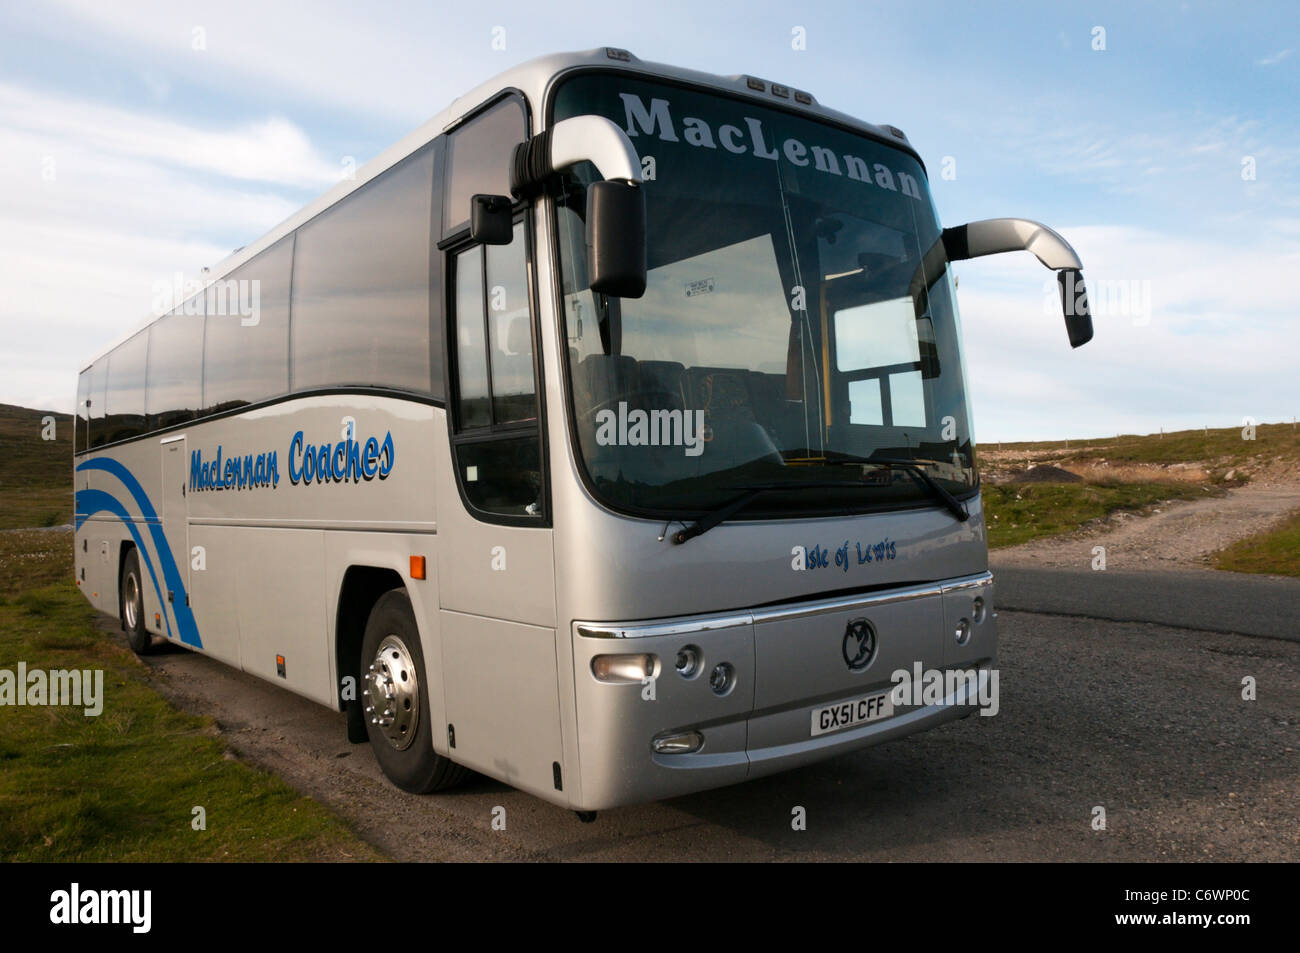 A 'MacLennan Coaches' coach at Timsgearraidh on the Isle of Lewis, Outer Hebrides, Scotland - Stock Image